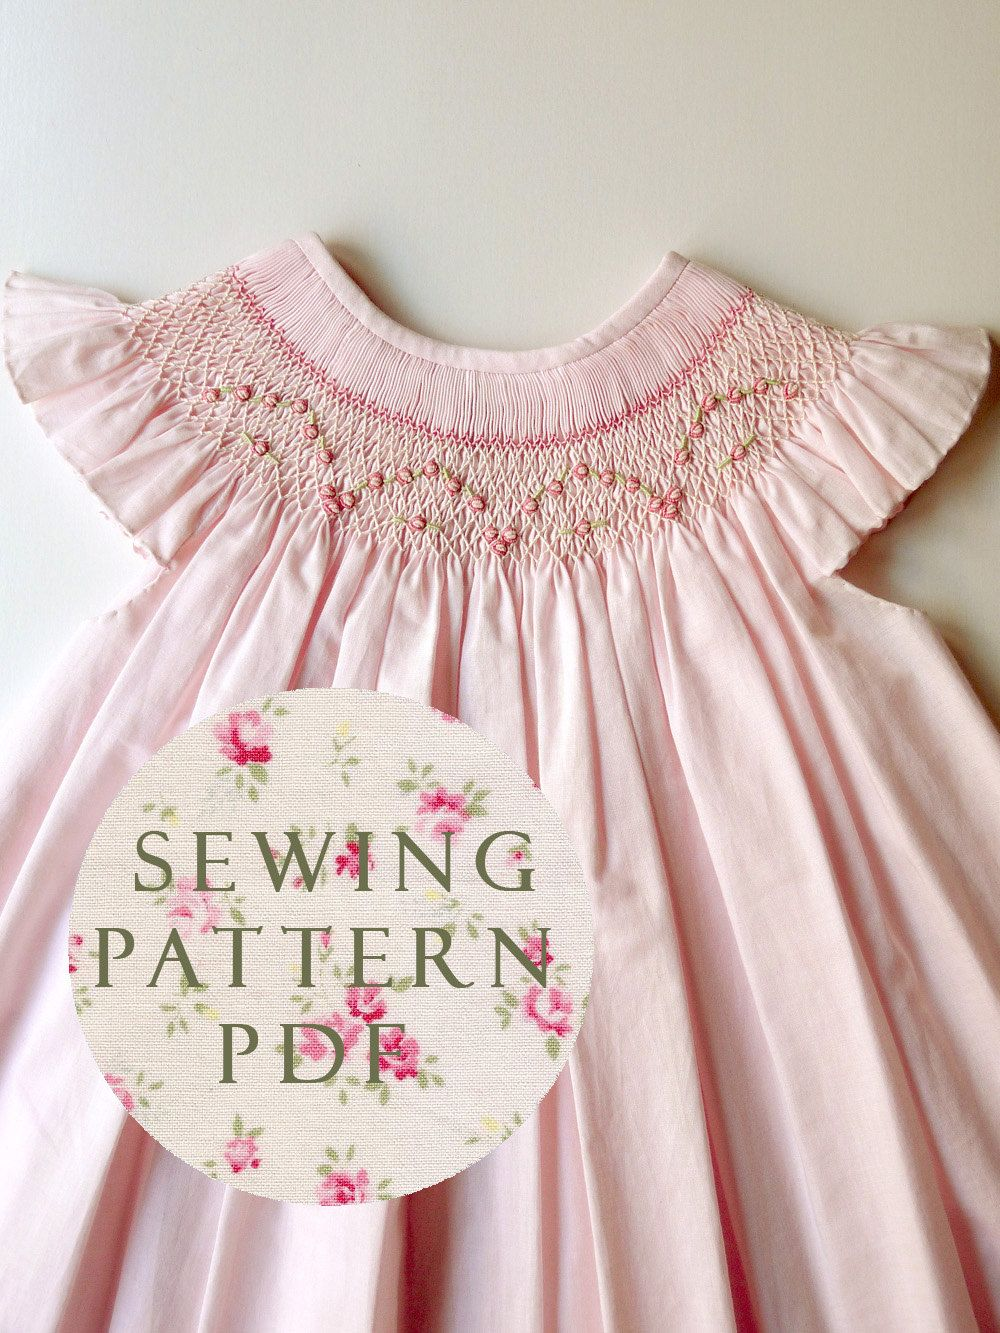 d4fffd900 The Charming Bishop Dress 1 year old - Sewing PDF Pattern - How to Make -  Upbringing Dress One Size